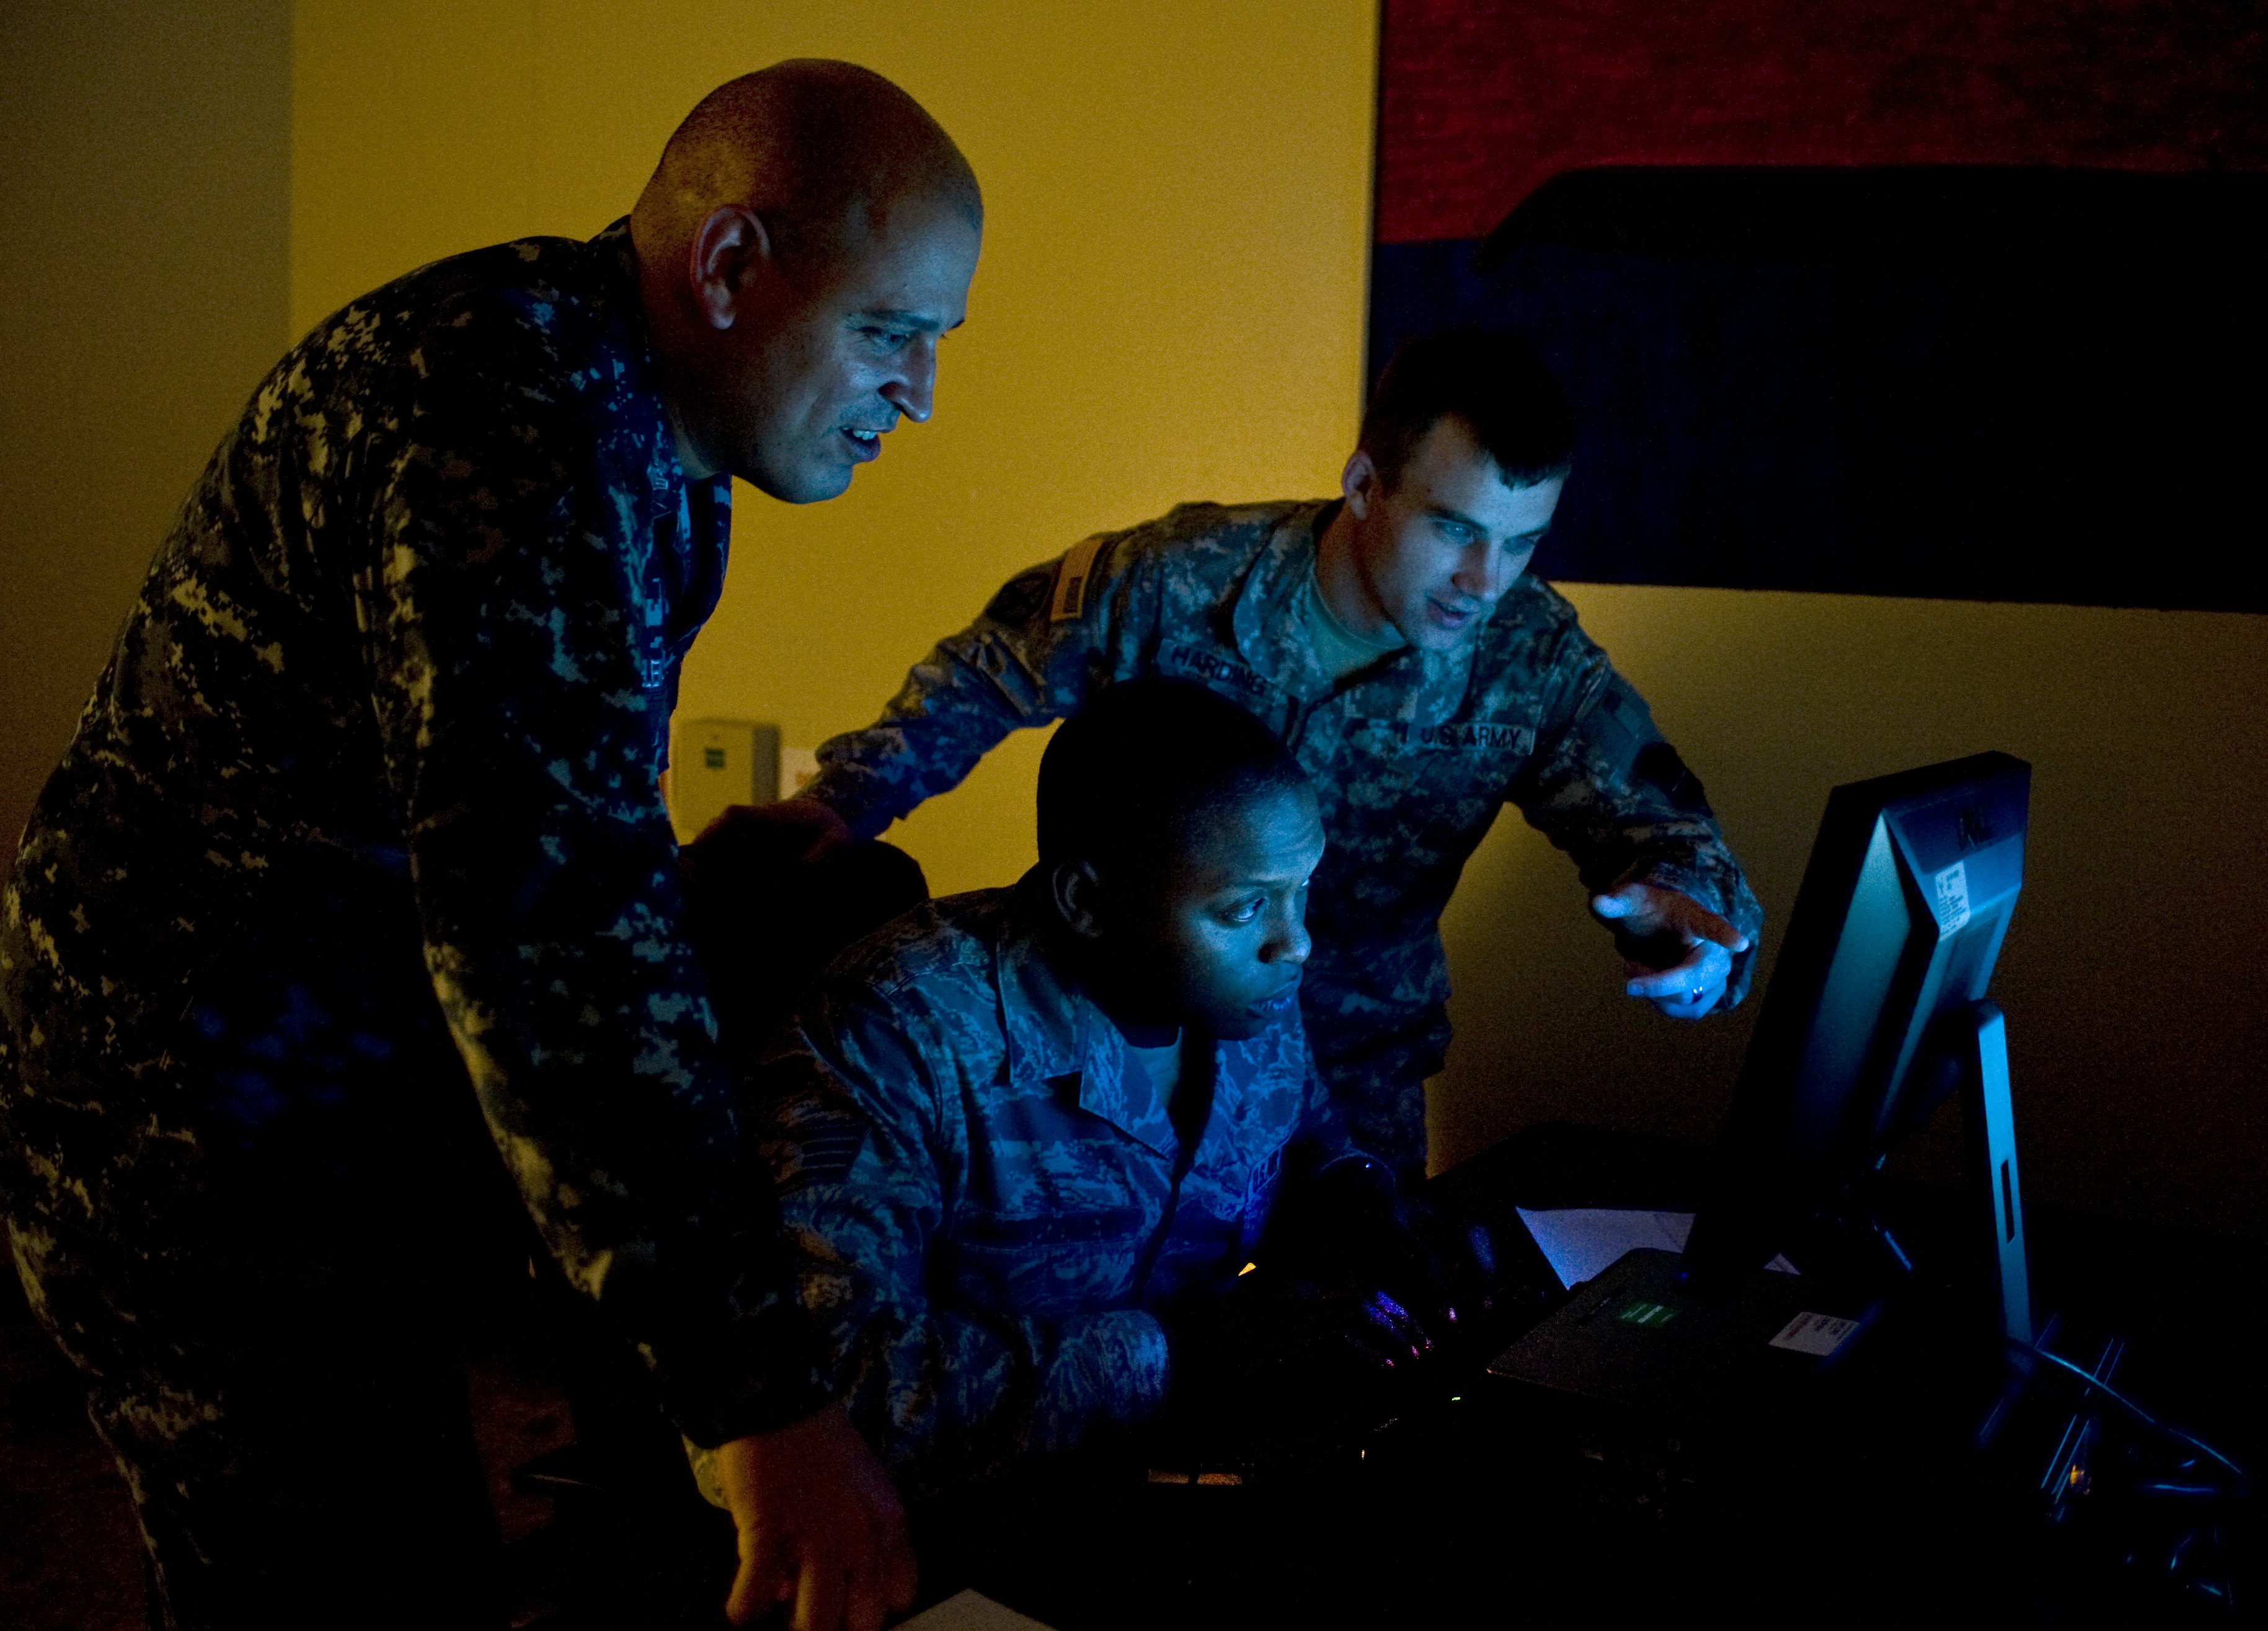 U.S. Navy Petty Officer 1st Class Joel Melendez, Naval Network Warfare Command information systems analysis, U.S. Air Force Staff Sgt. Rogerick Montgomery, U.S. Cyber Command network analysis, and U.S. Army Staff Sgt. Jacob Harding, 780th Military Intelligence Brigade cyber systems analysis, analyze an exercise scenario during Cyber Flag 13-1, Nov. 8, 2012, at Nellis Air Force Base, Nev. (Senior Airman Matthew Lancaster/Air Force)